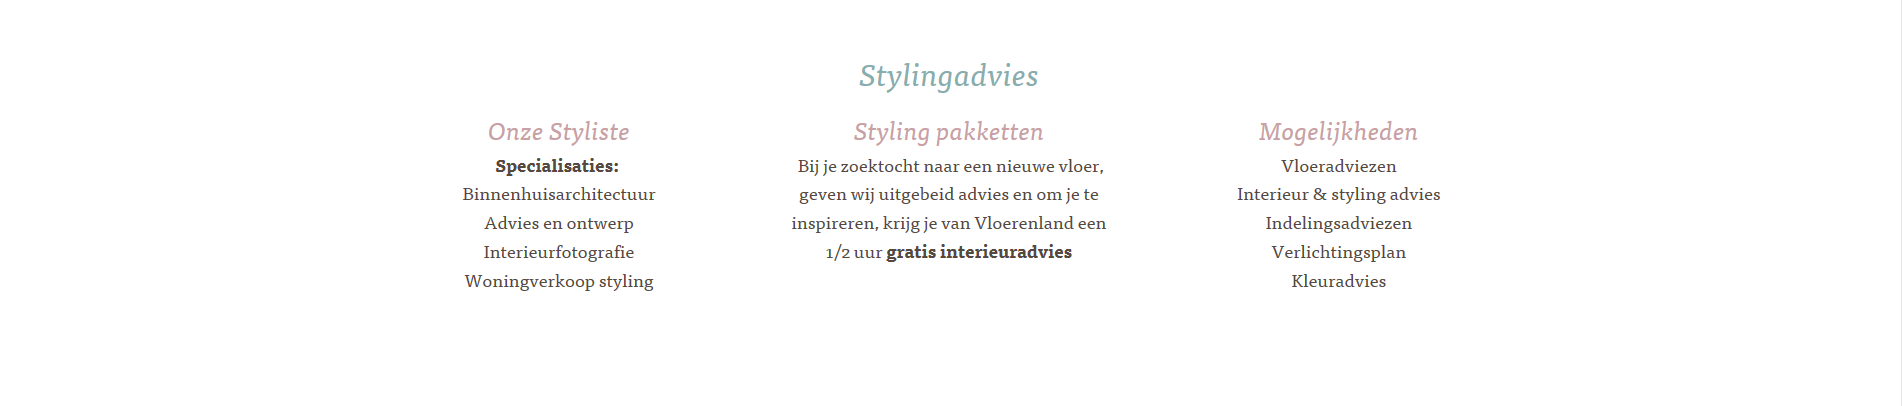 Stylingadvies